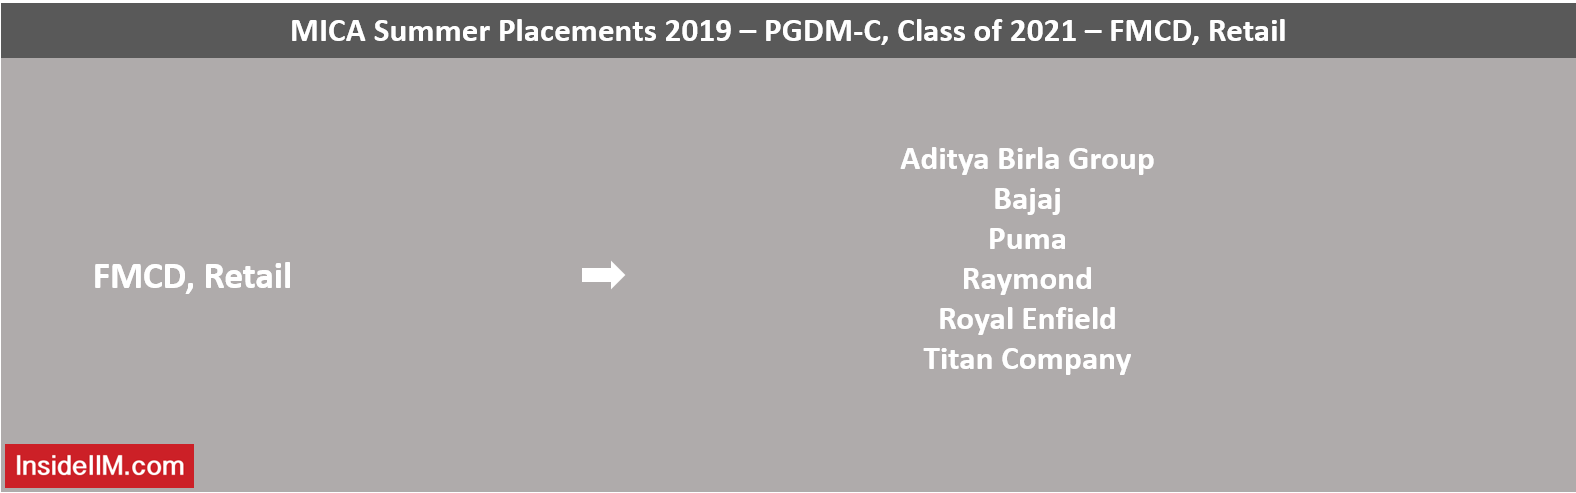 MICA Summer Placements 2019 - FMCD, Retail